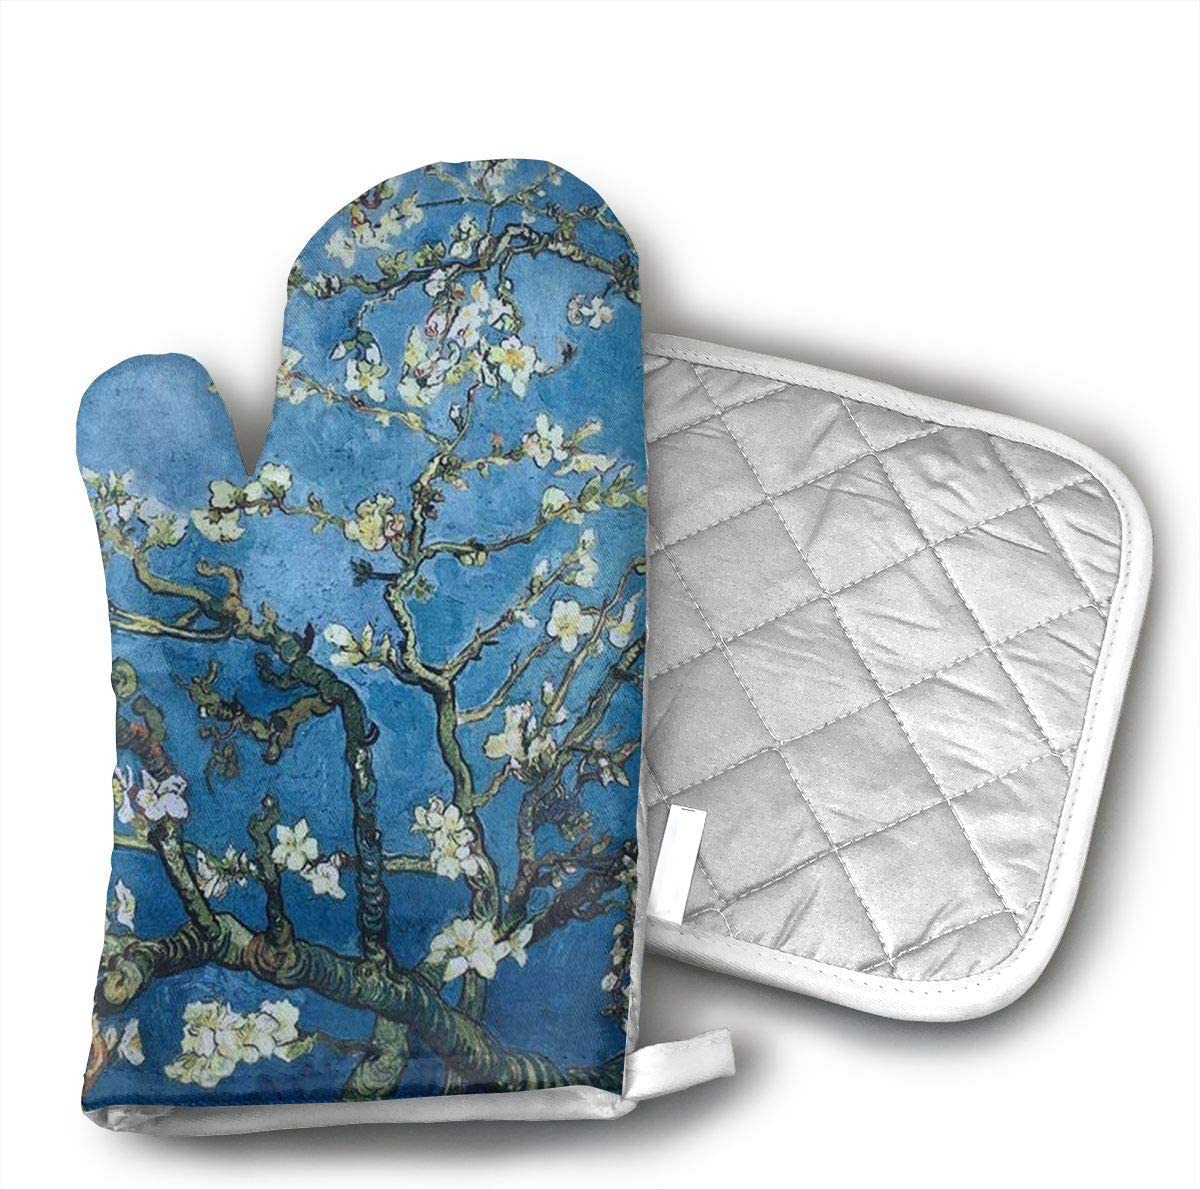 NoveltyGloves Almond Blossoms by Vincent Van Gogh Oven Mitts,Professional Heat Resistant Microwave BBQ Oven Insulation Thickening Cotton Gloves Baking Pot Mitts Soft Inner Lining Kitchen Cooking